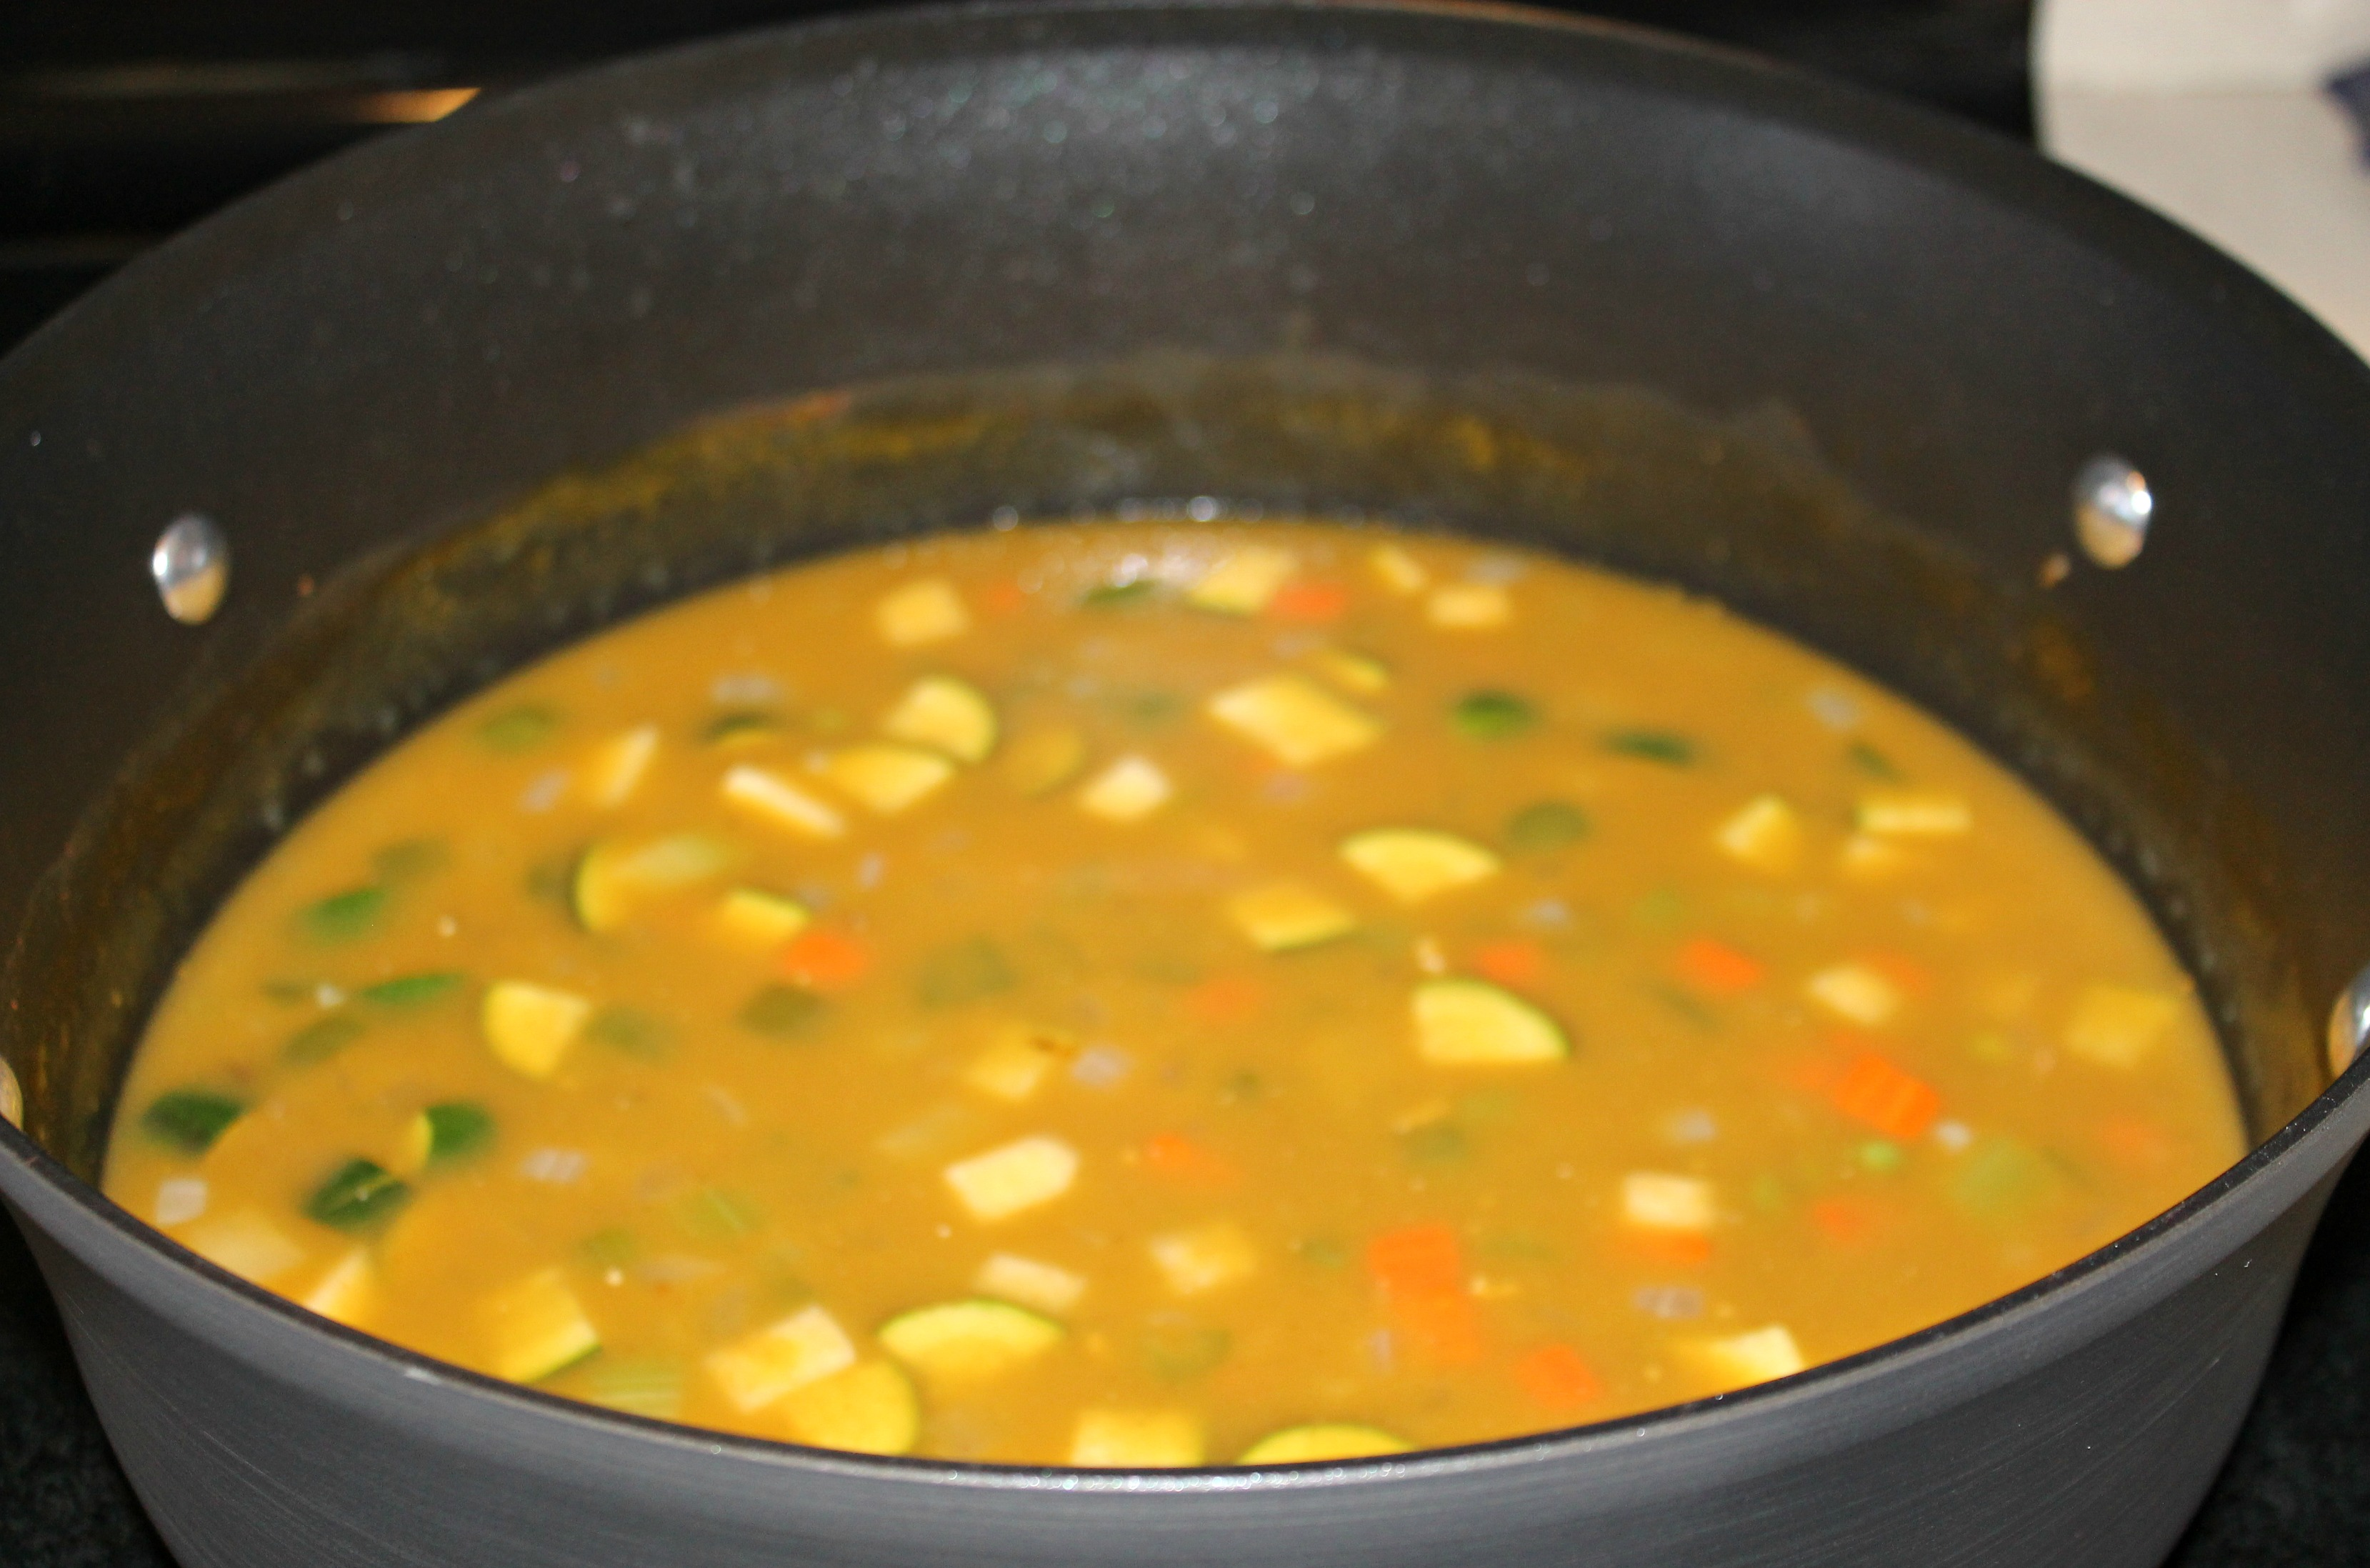 Sweet Pot Soup - Cooked Soup